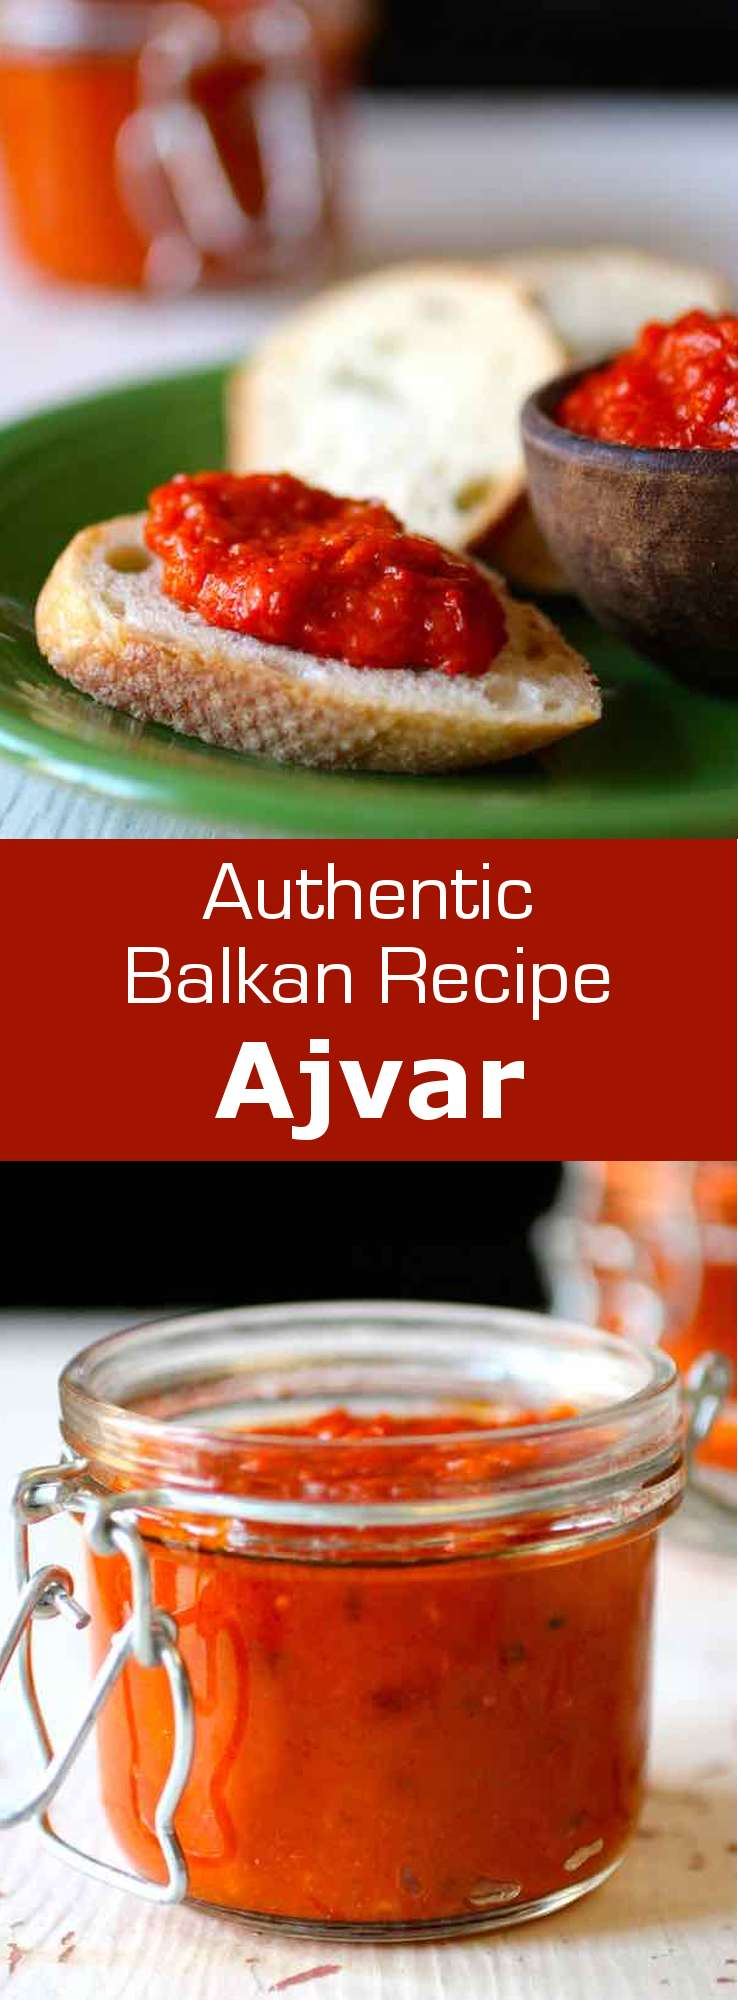 Ajvar is an easy to make and deliciously tangy eggplant and red bell pepper spread that is popular throughout the Balkans. #Balkans #196flavors